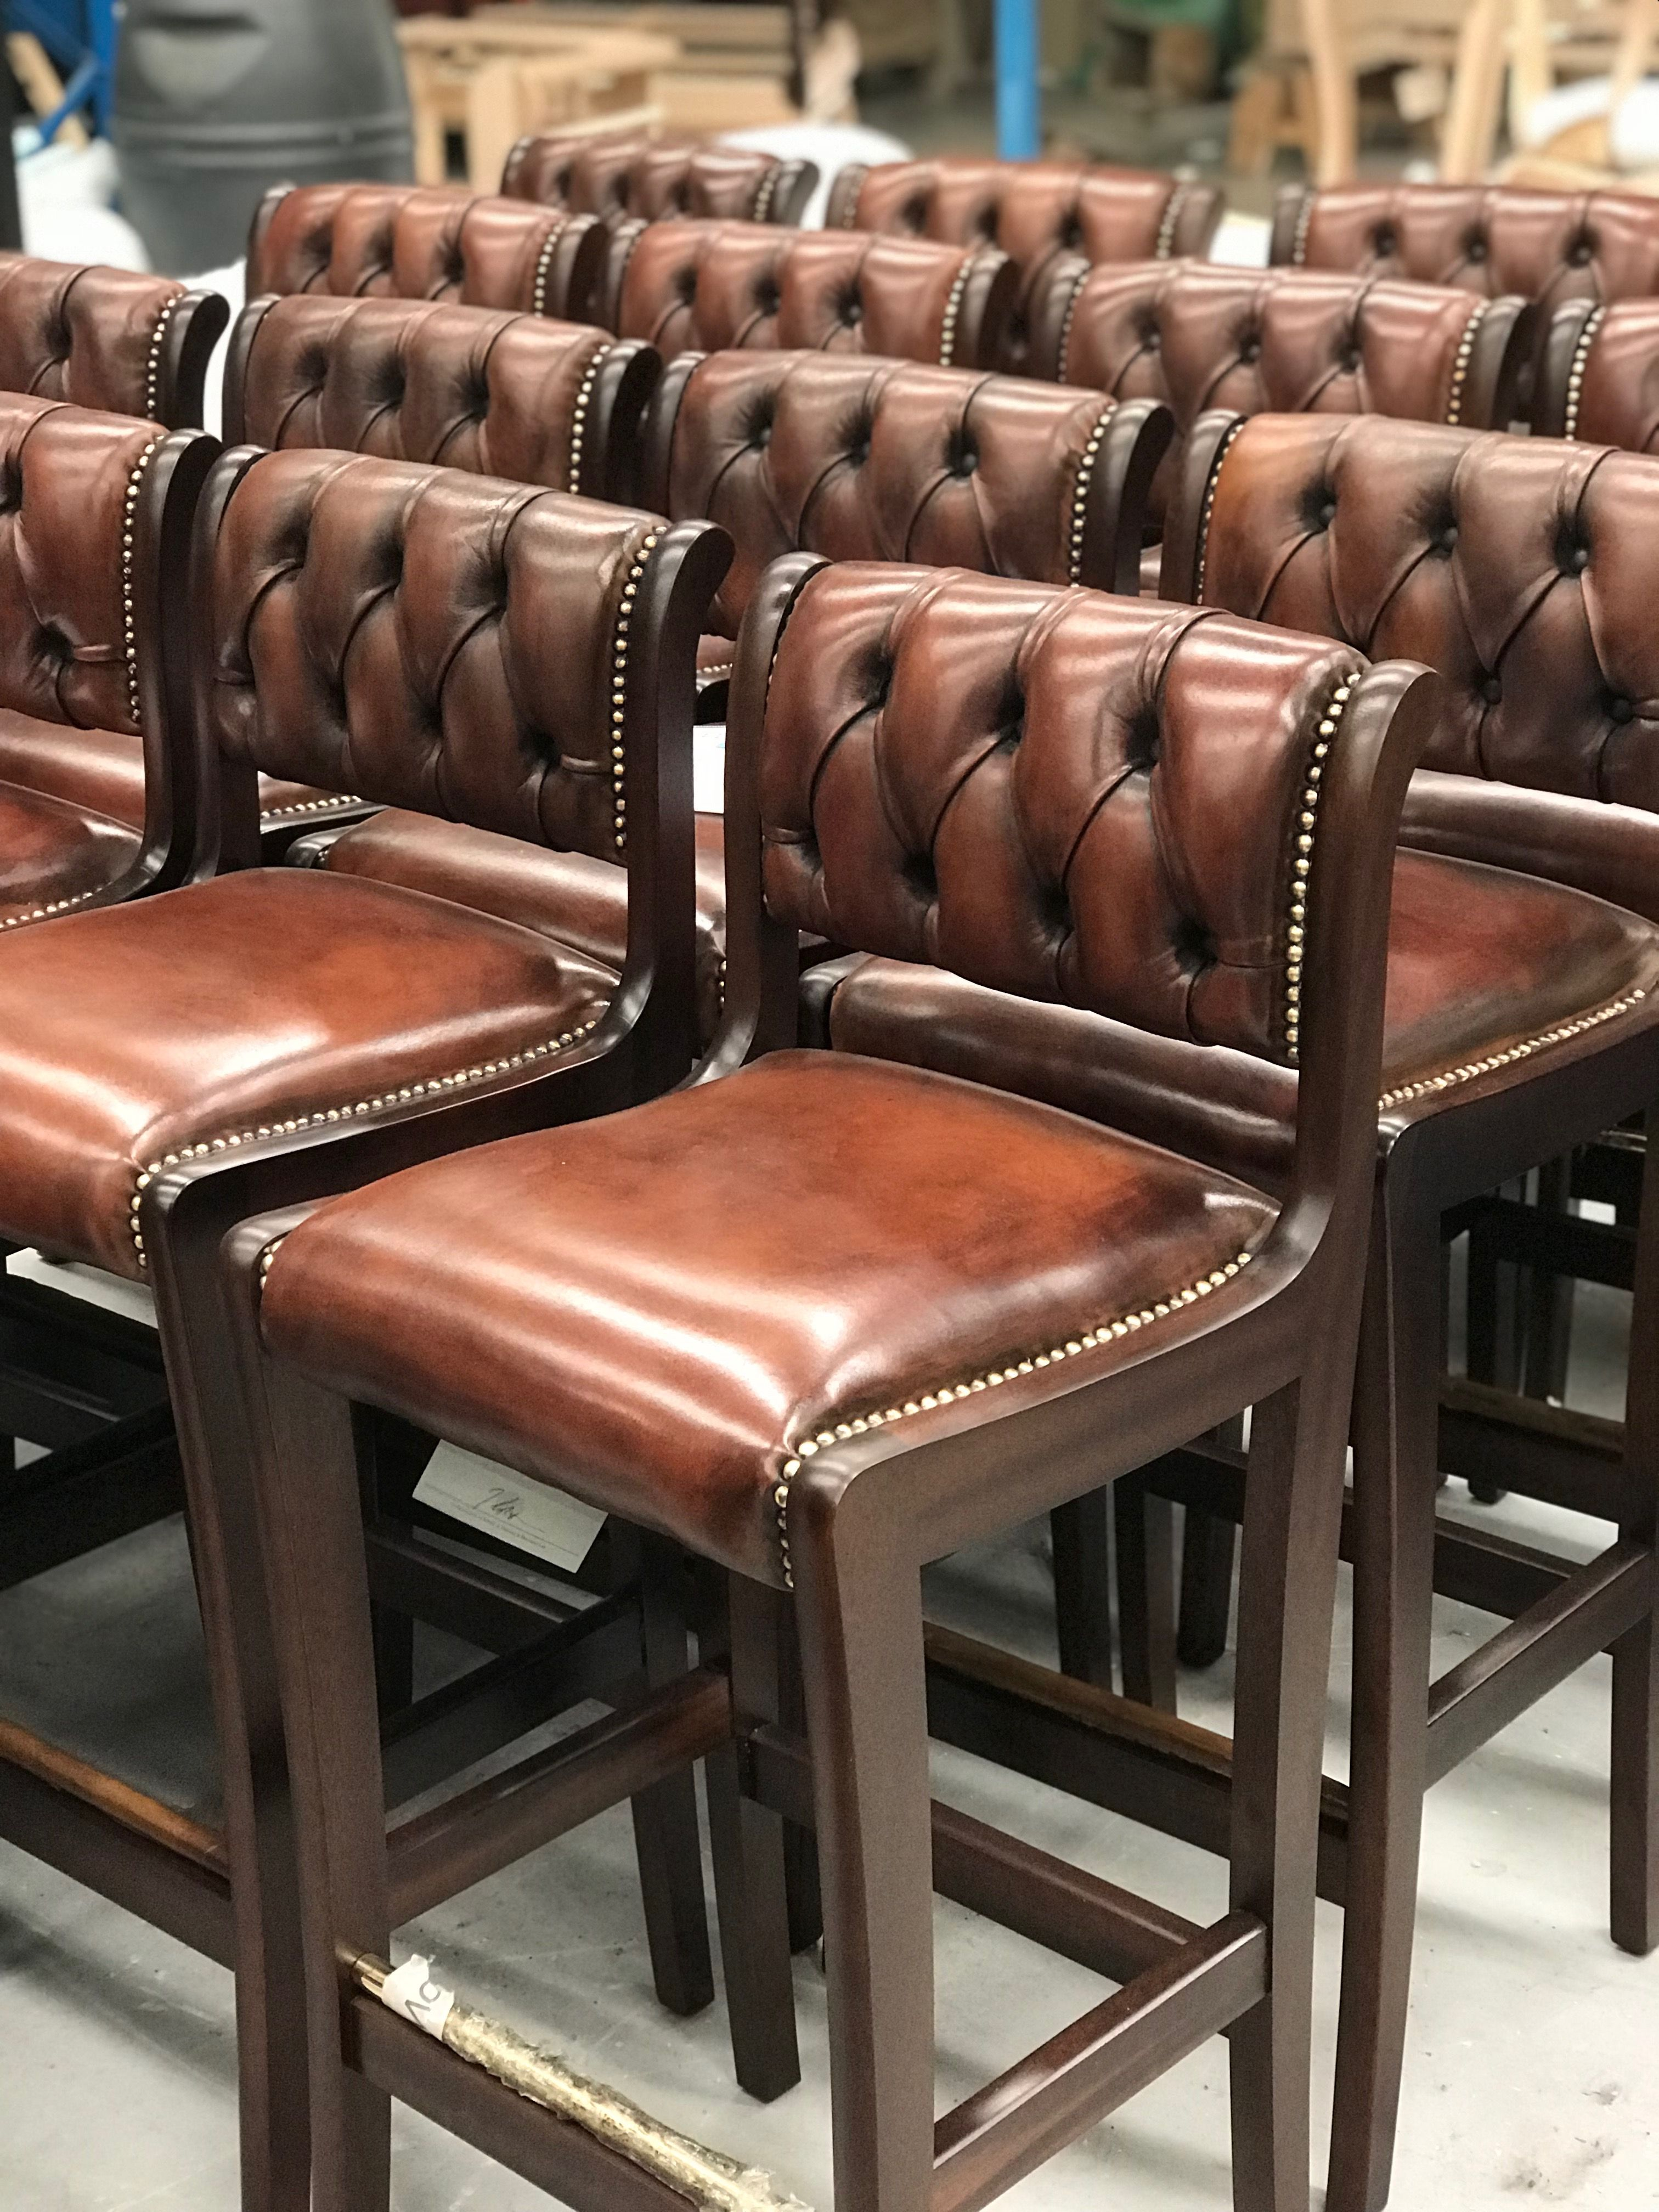 Regency Bar Stools In Hand Coloured Brown Leather Dark Oak Wood Stain And Individual Brass Studs Fleminghow Rustic Bar Stools Leather Bar Leather Bar Stools